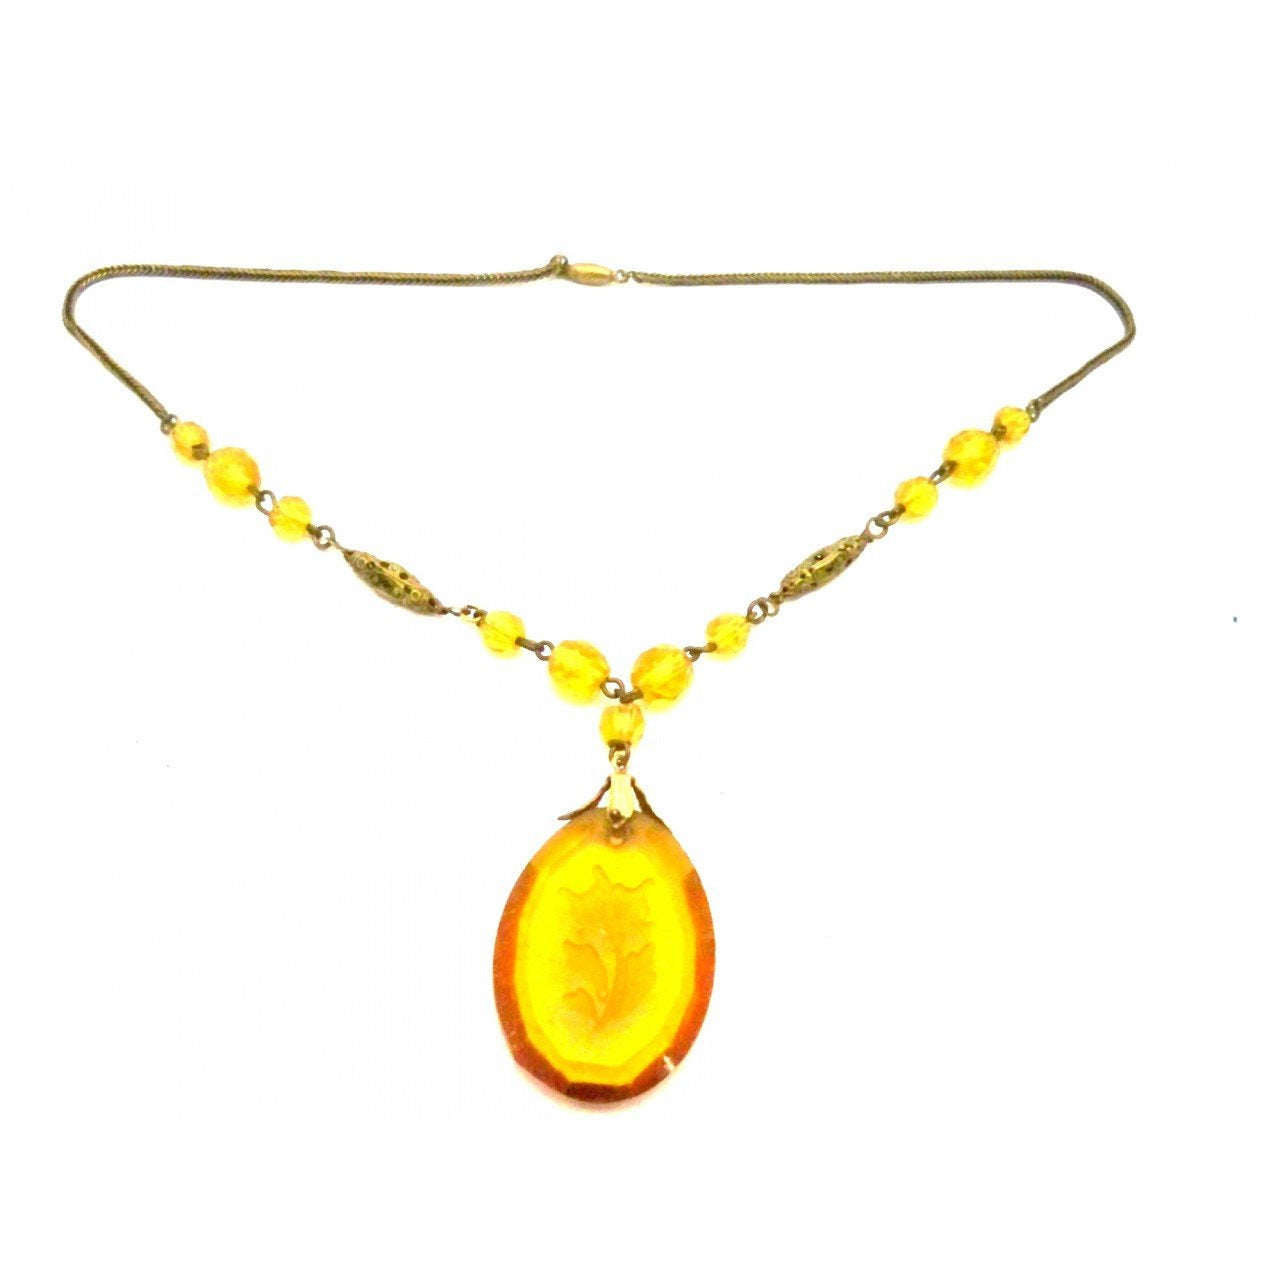 Vintage Amber Glass & Brass Necklace Downton Abbey 1920s Era - The Best Vintage Clothing  - 1